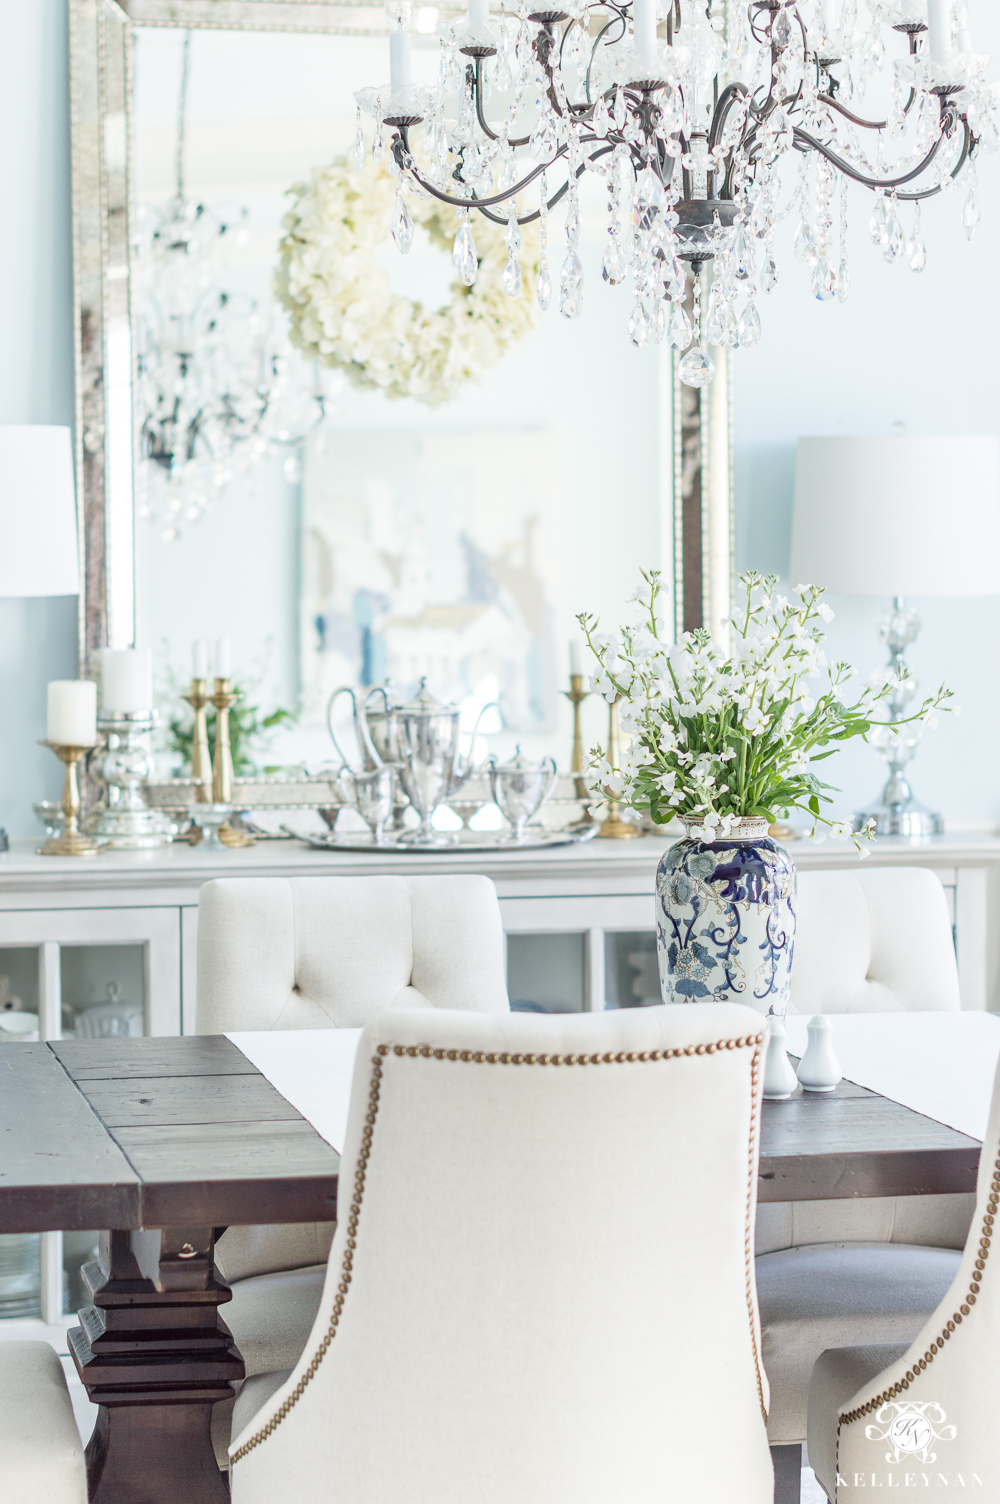 Dining Room Table Centerpiece in Blue and White Vase